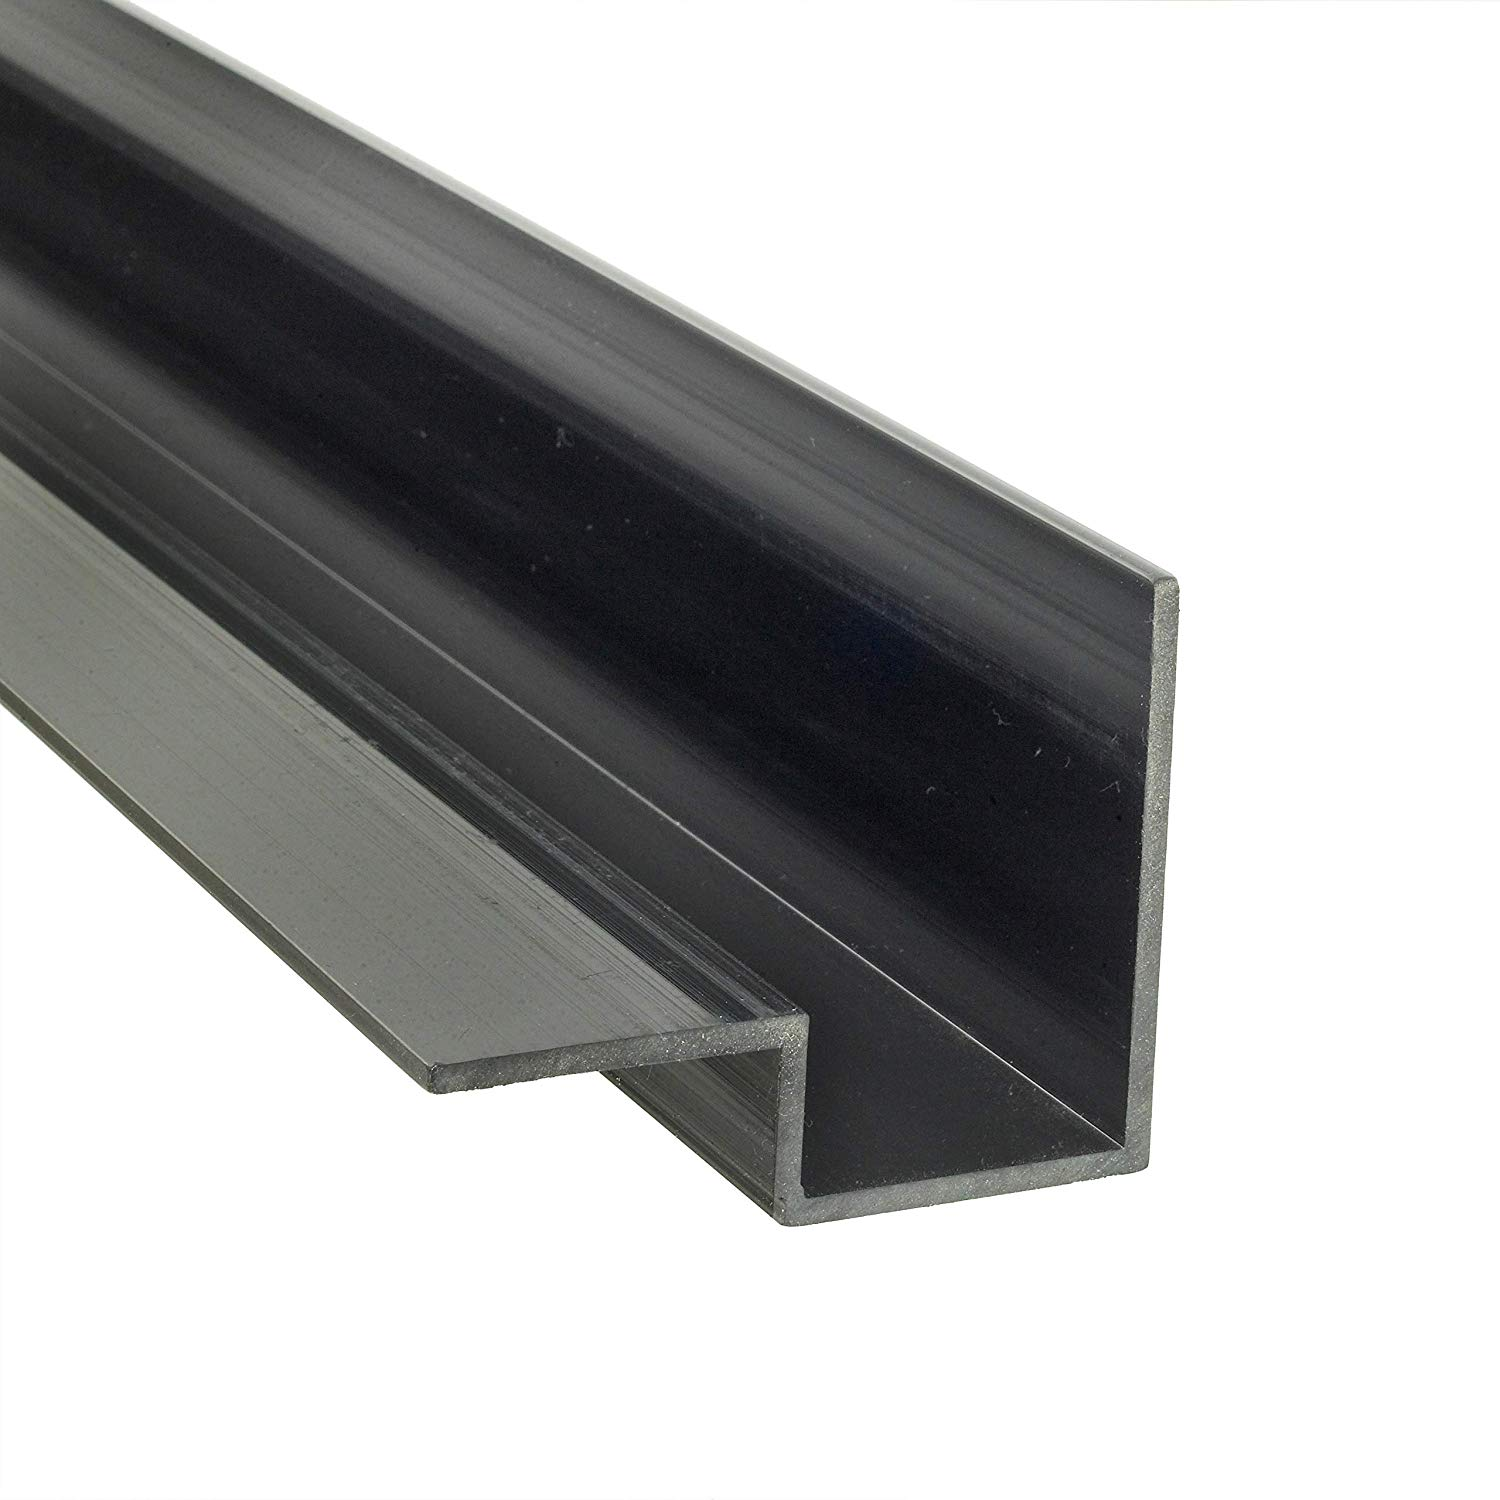 Cheap Cardboard Tubes For Concrete Forms, find Cardboard